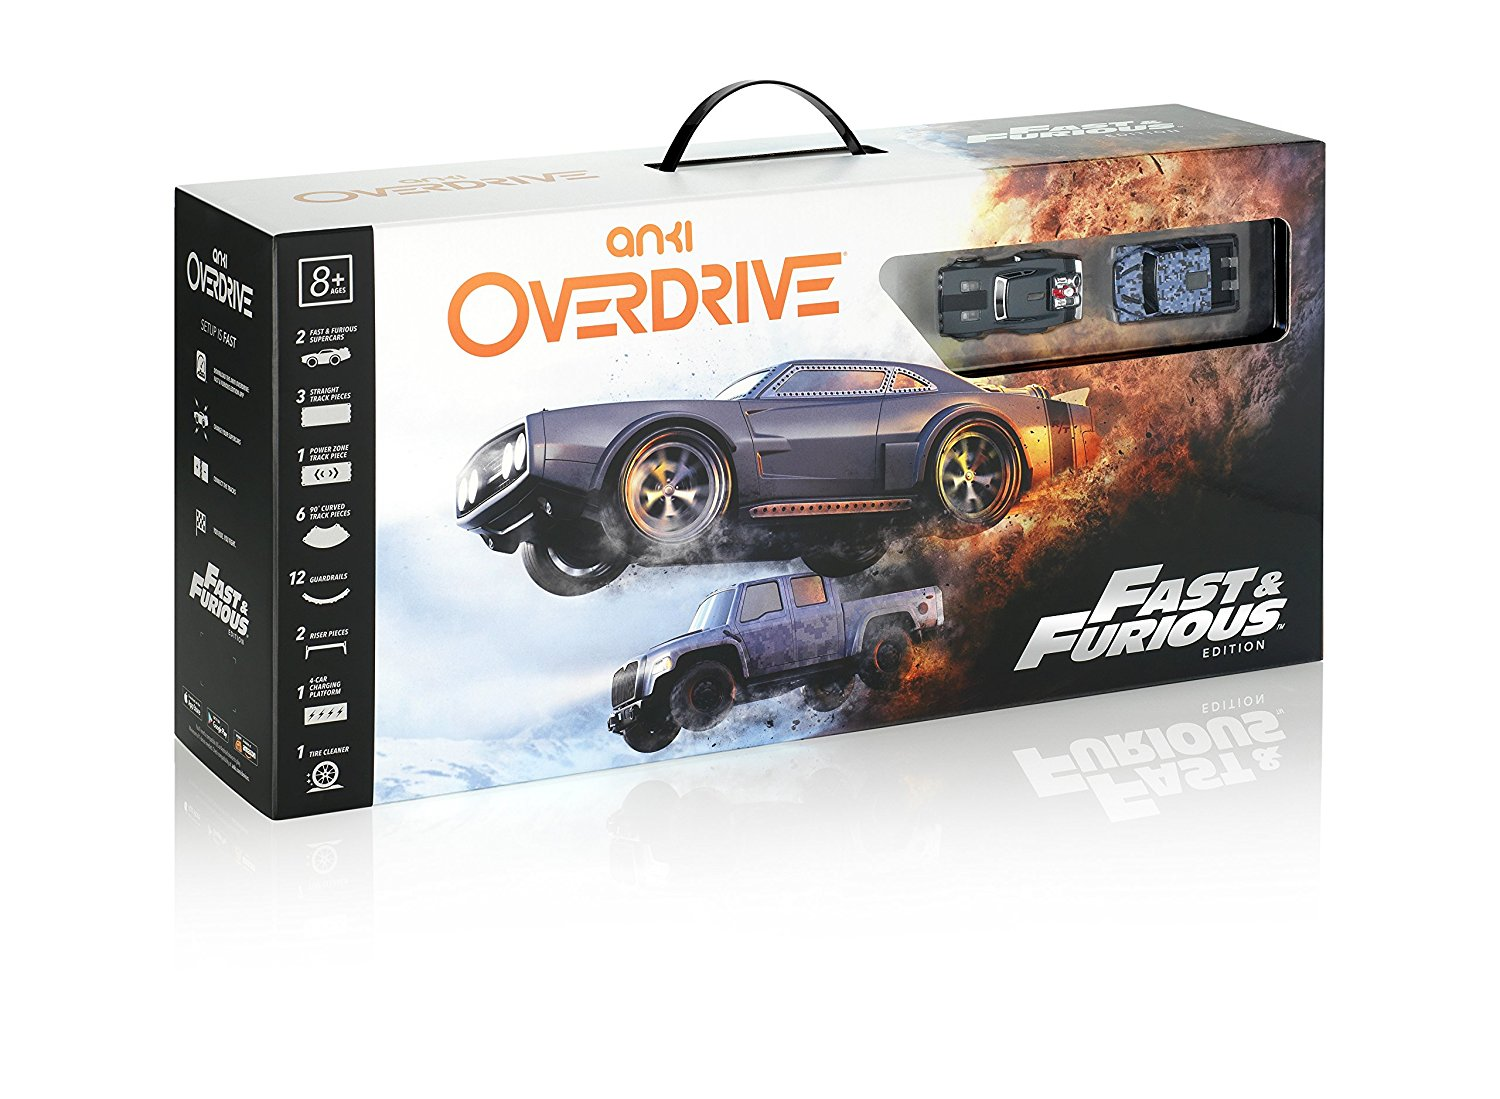 Aniki Overdrive Fast & Furious Edition